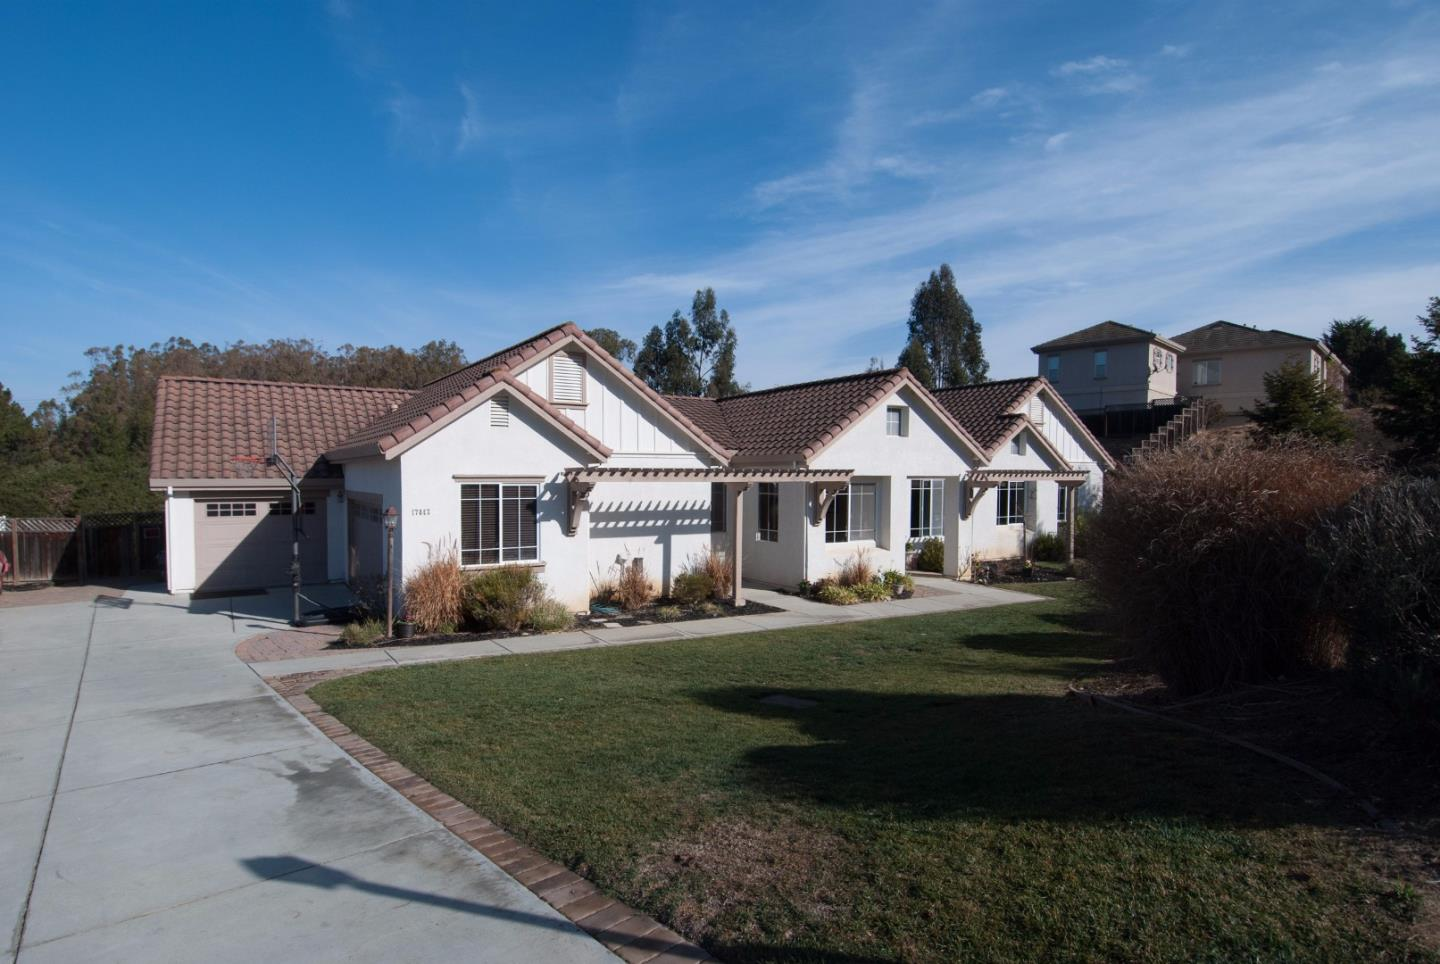 واحد منزل الأسرة للـ Sale في 17447 Avenida Los Altos Prunedale, California 93907 United States